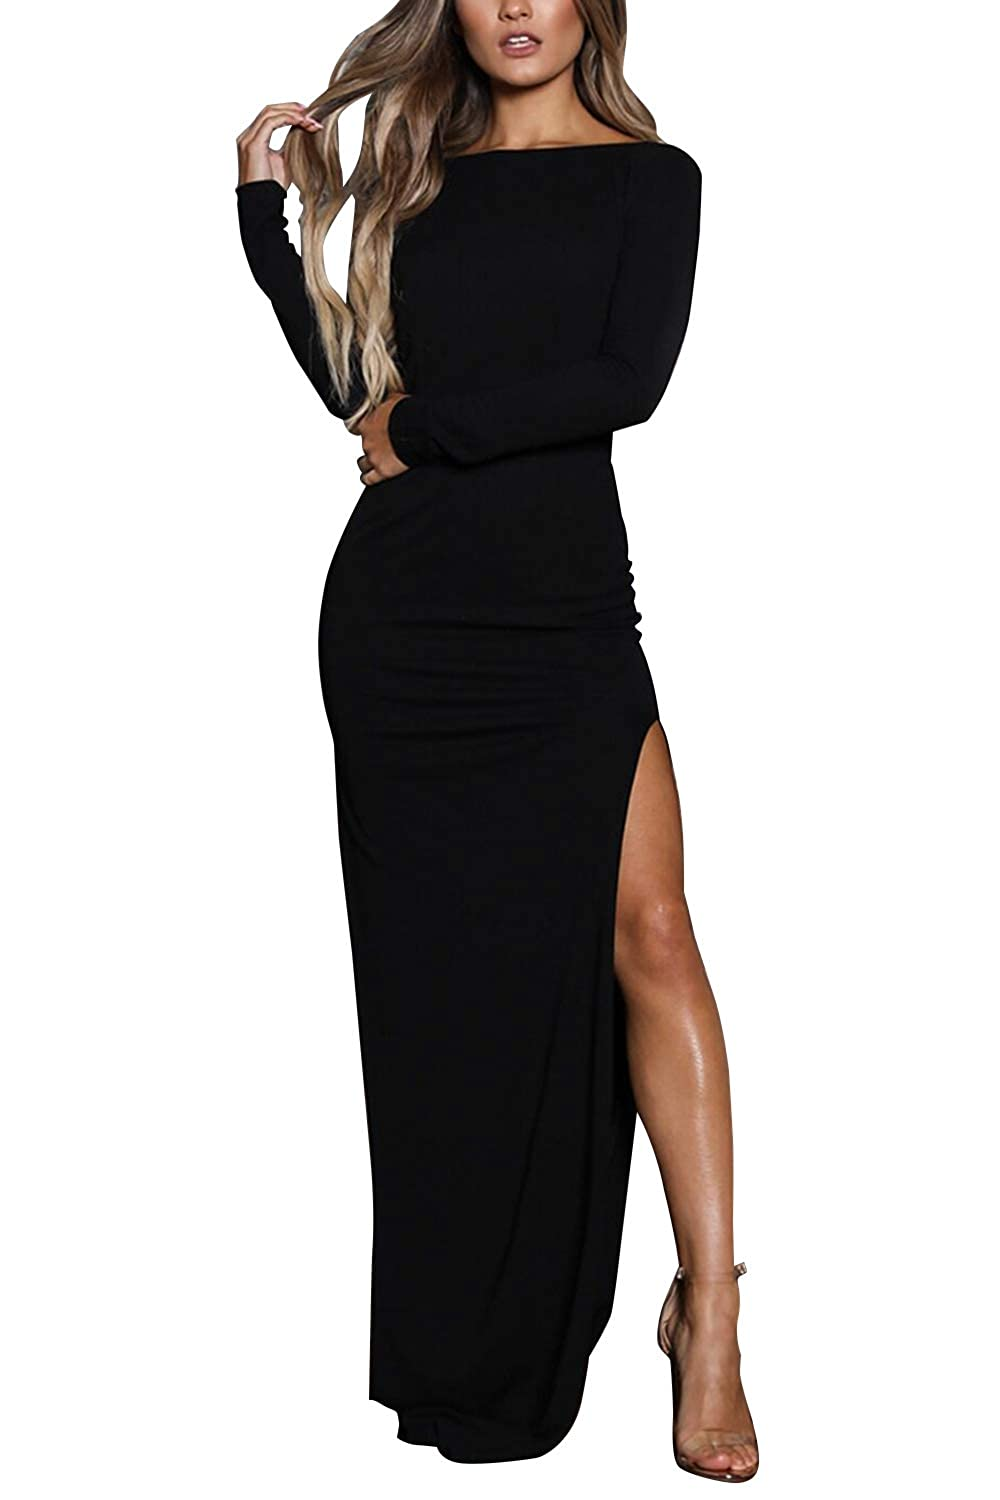 Zamtapary Womens Maxi Dresses Elegant Bodycon Backless Slit Long Evening Dress